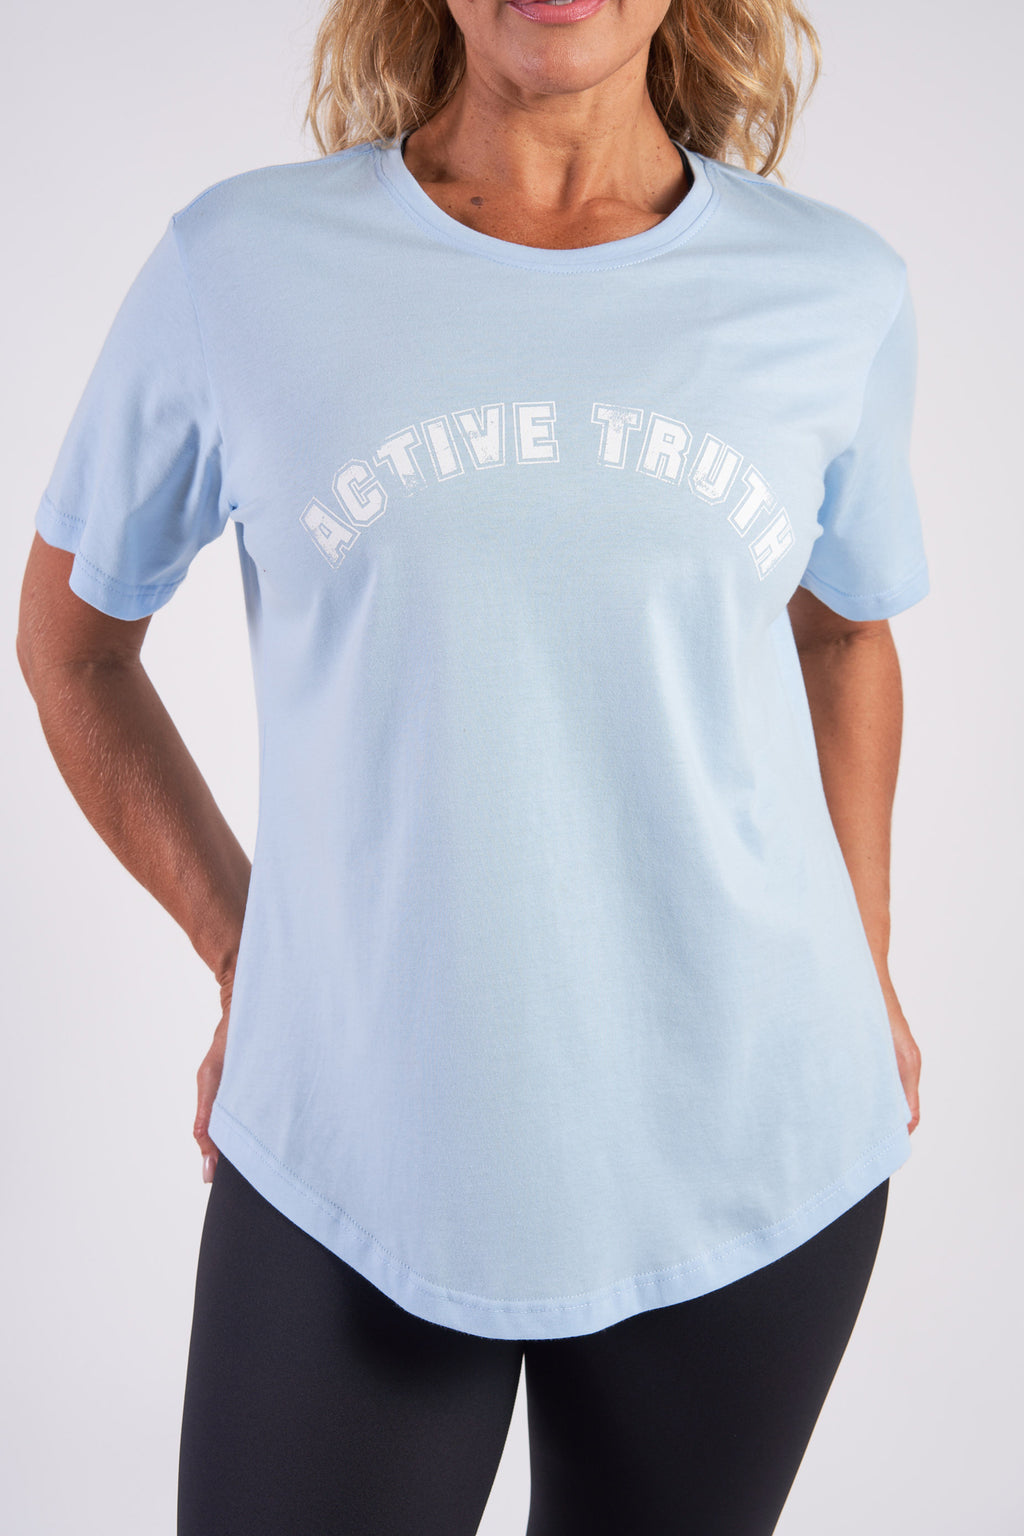 activewear-relaxed-crew-tee-organic-cotton-light-blue-large-front3